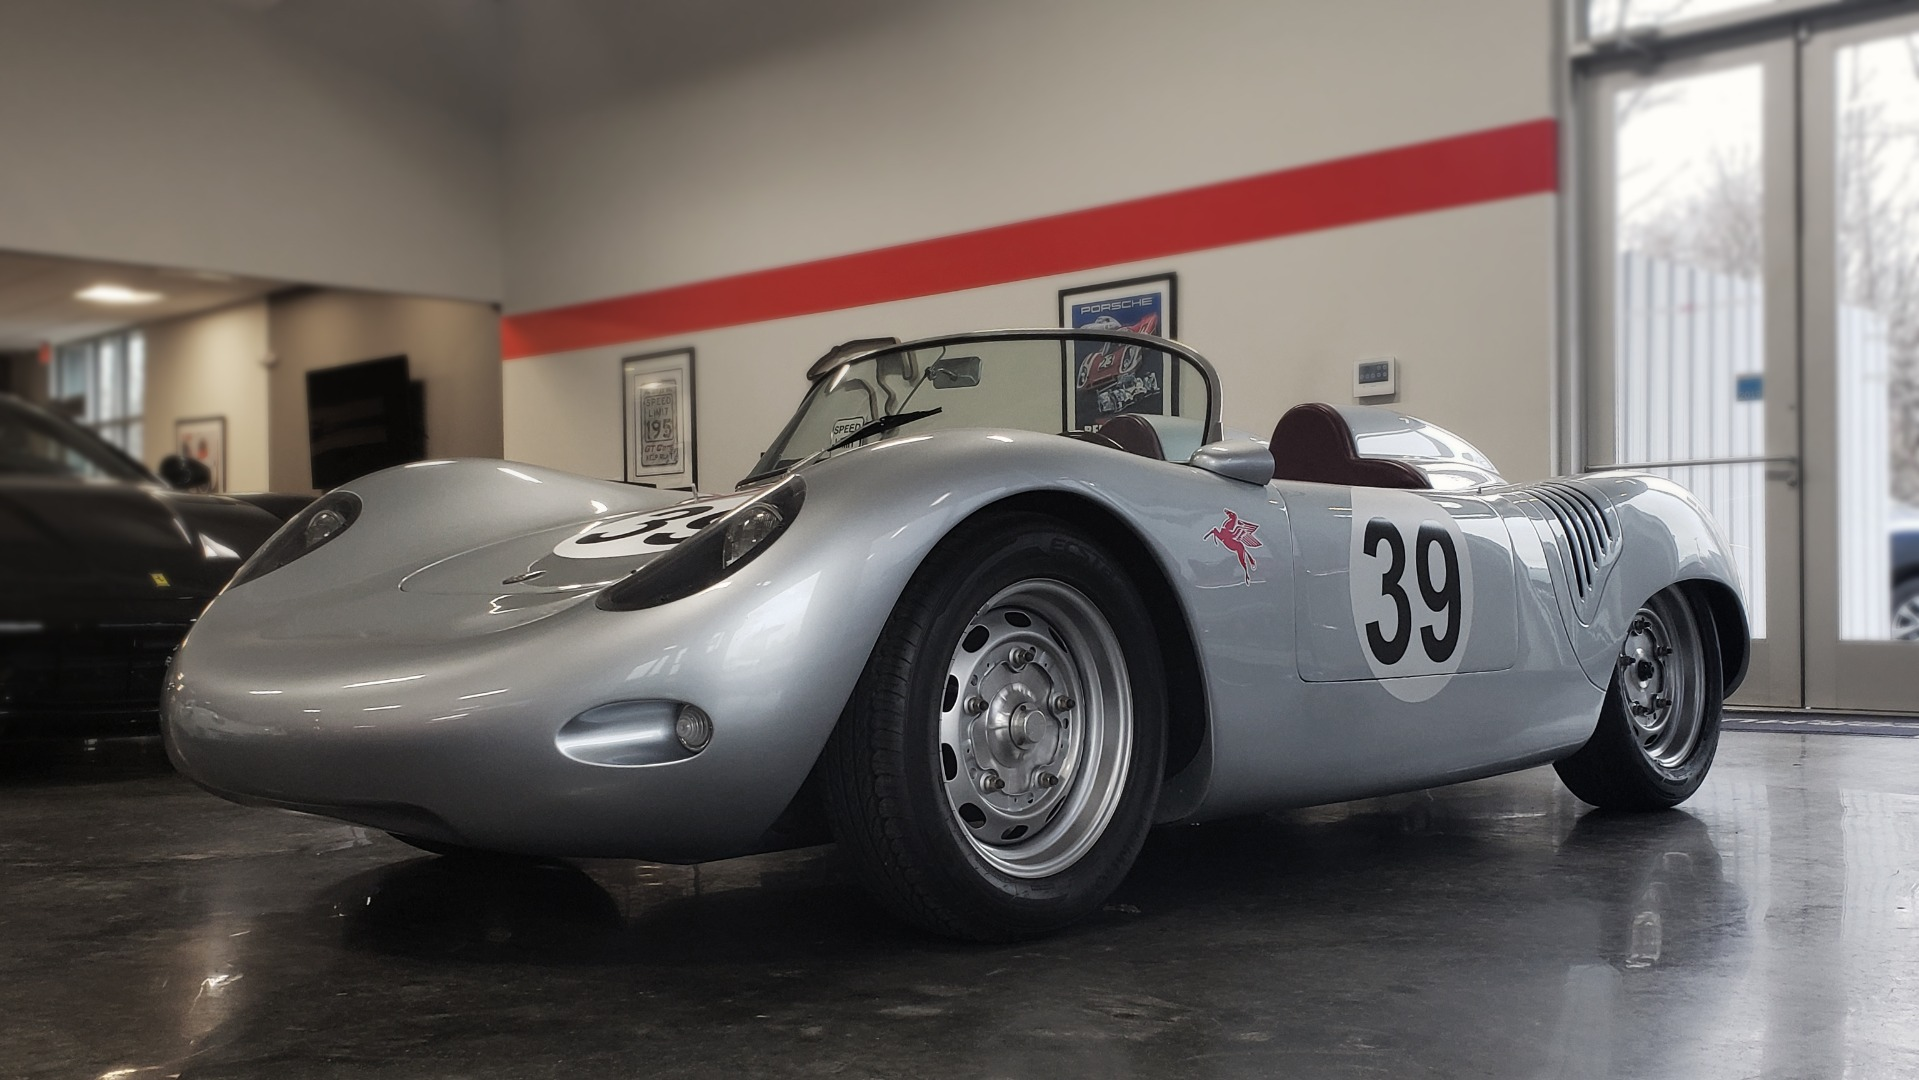 Used 1959 Porsche 718 RSK SPYDER REPLICA / 2275CC W/44MM WEBER (160HP) / 4-SPD MANUAL for sale $39,999 at Formula Imports in Charlotte NC 28227 52